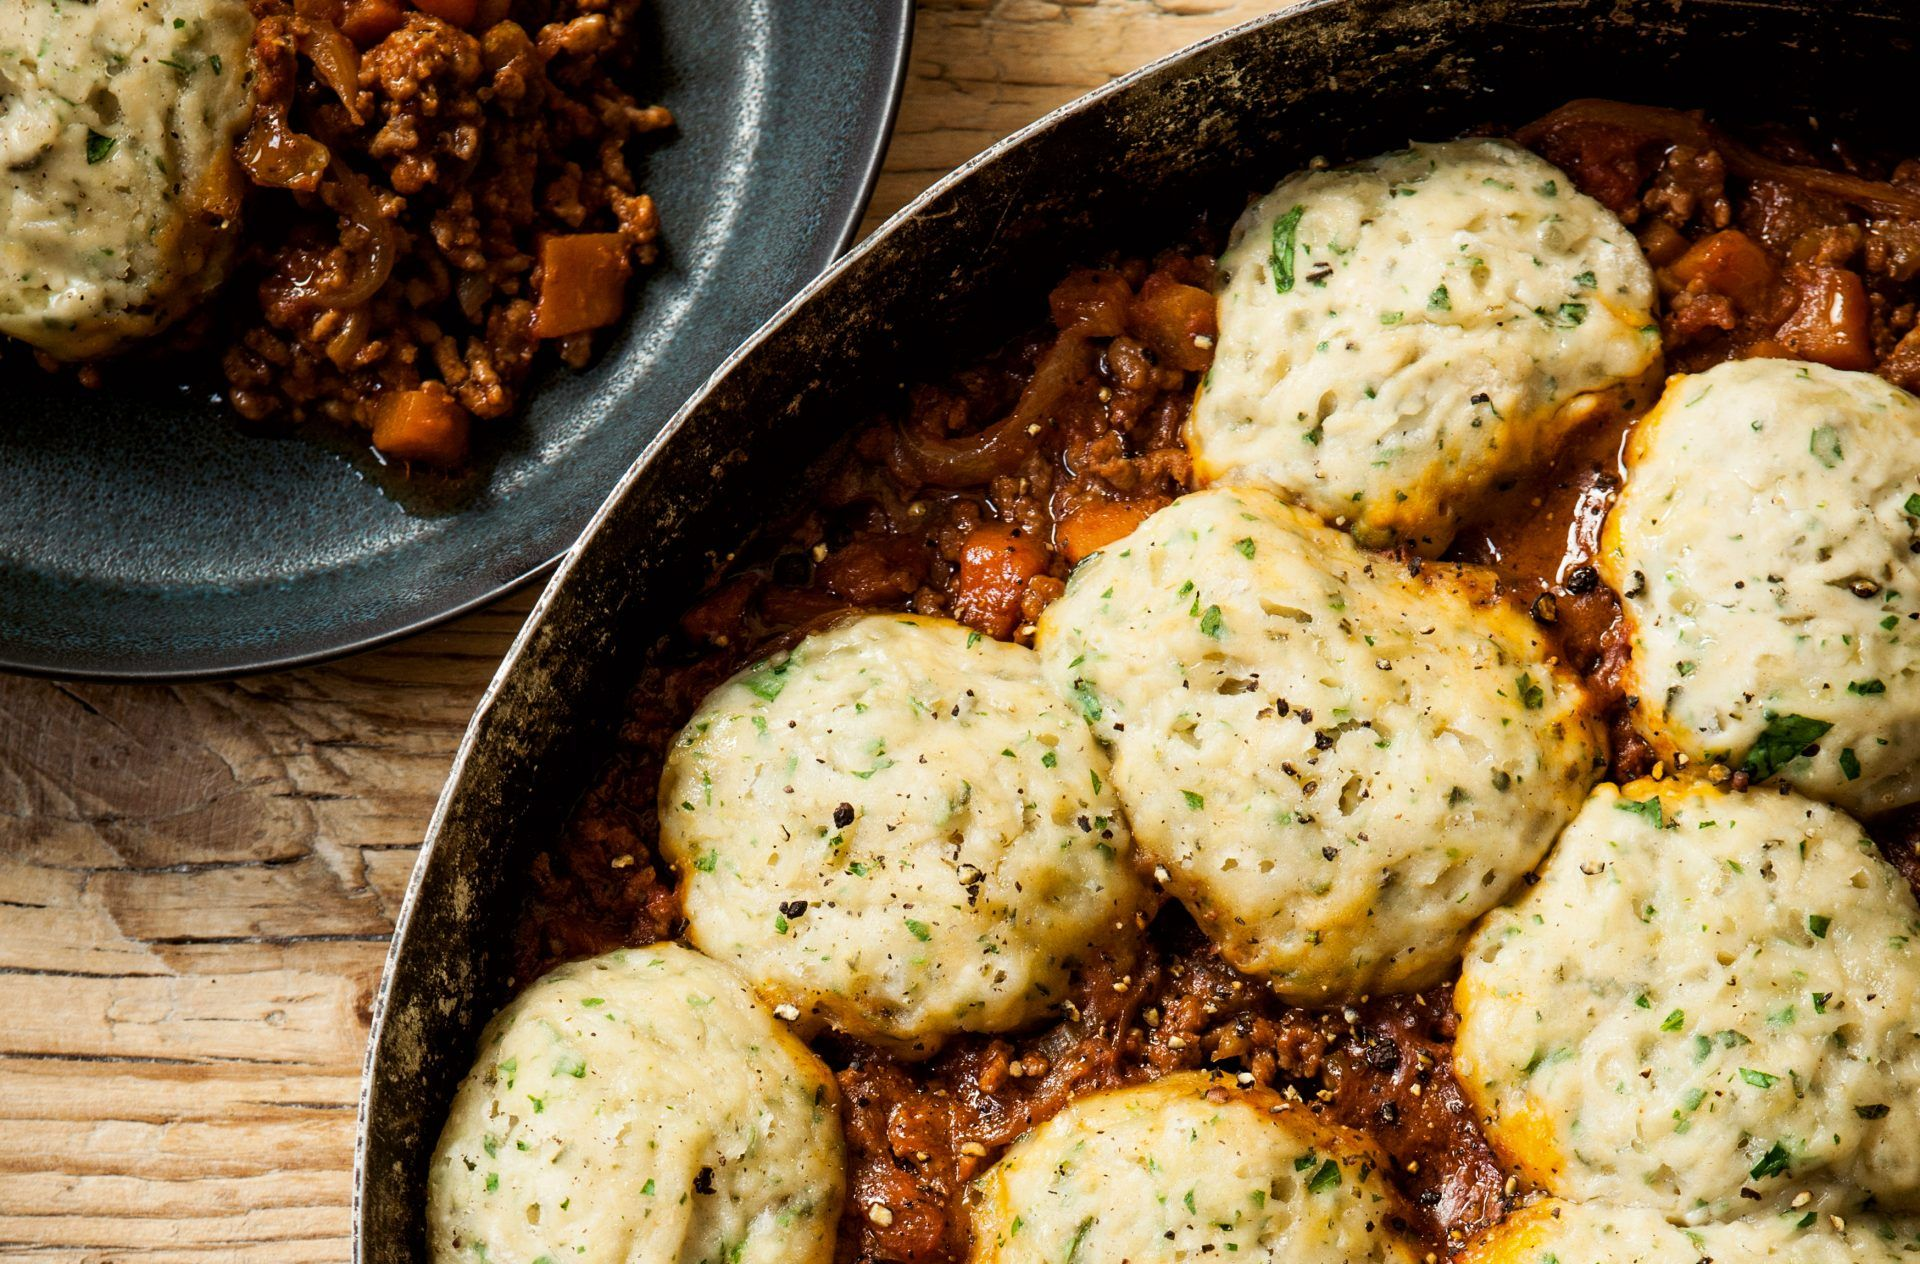 Hairy Bikers Mince And Herby Dumplings Dinner Recipes Goodtoknow Recipe Recipes Minced Beef Recipes Dinner Recipes